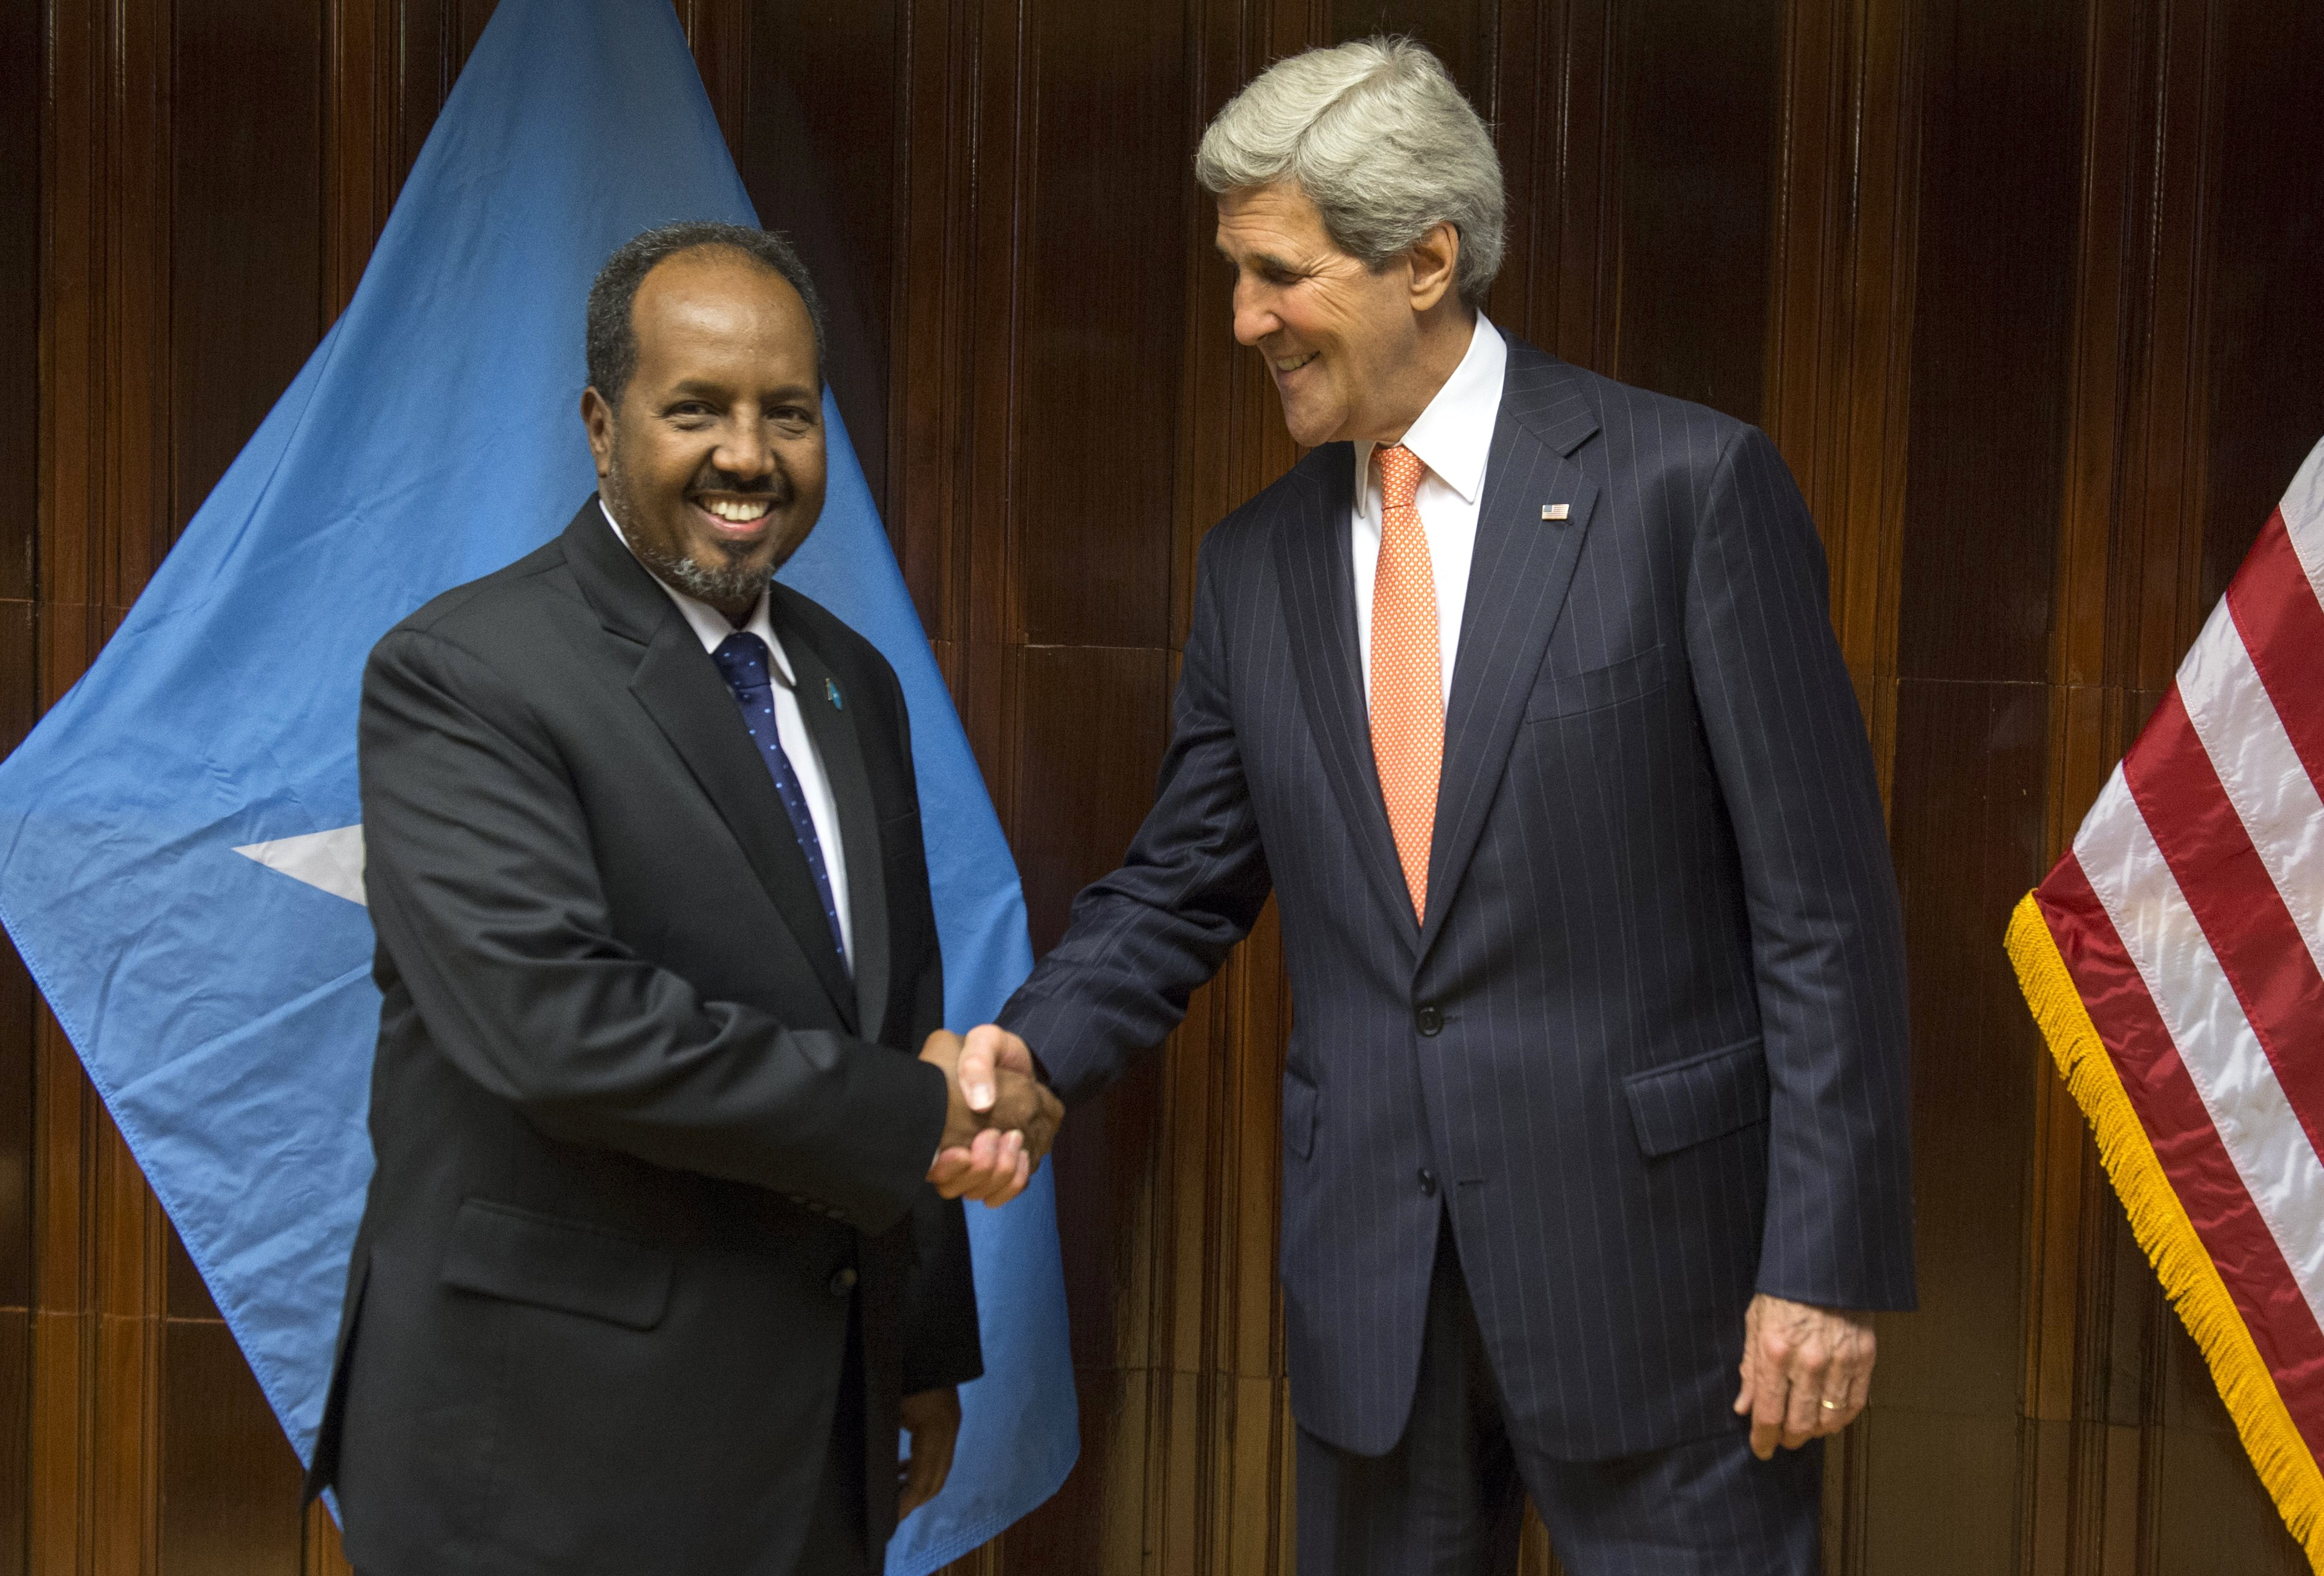 US Secretary of State John Kerry (R) and Somali President Hassan Sheikh Mohamud shake hands prior to a meeting at Addis Ababa Bole International Airport on May 3, 2014.